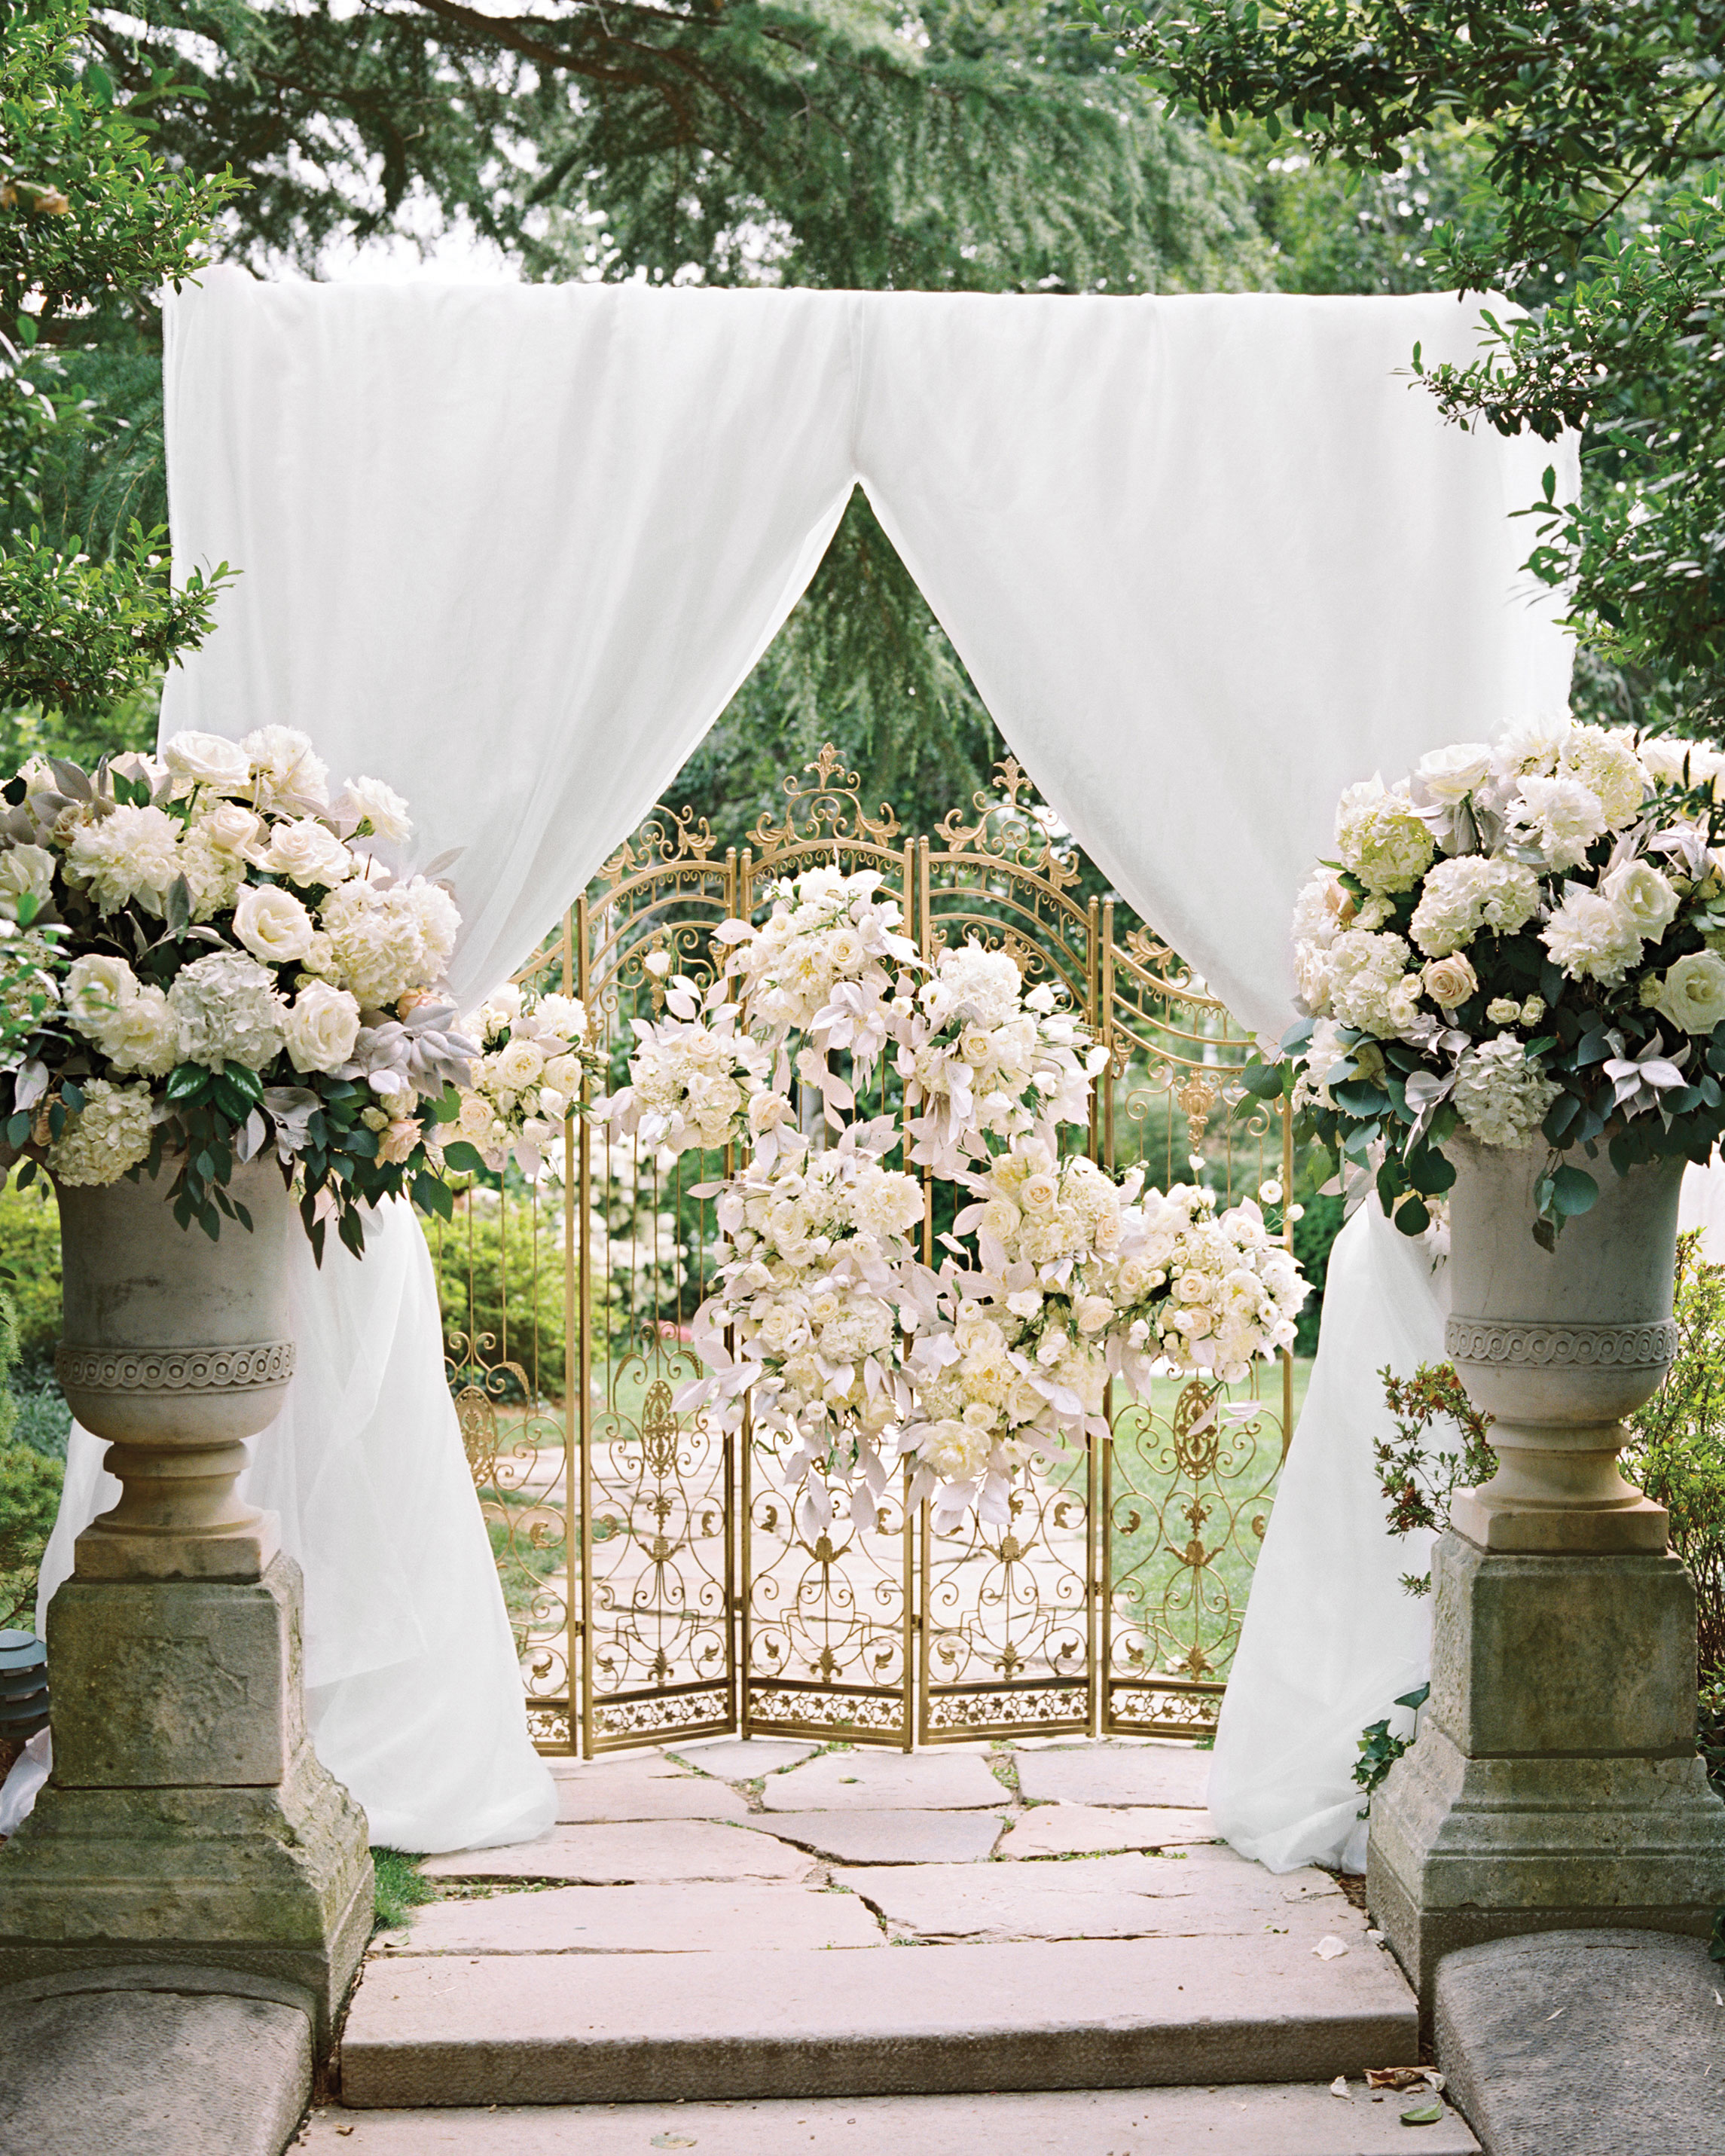 Wedding Ceremony Setup Ideas: 59 Wedding Arches That Will Instantly Upgrade Your